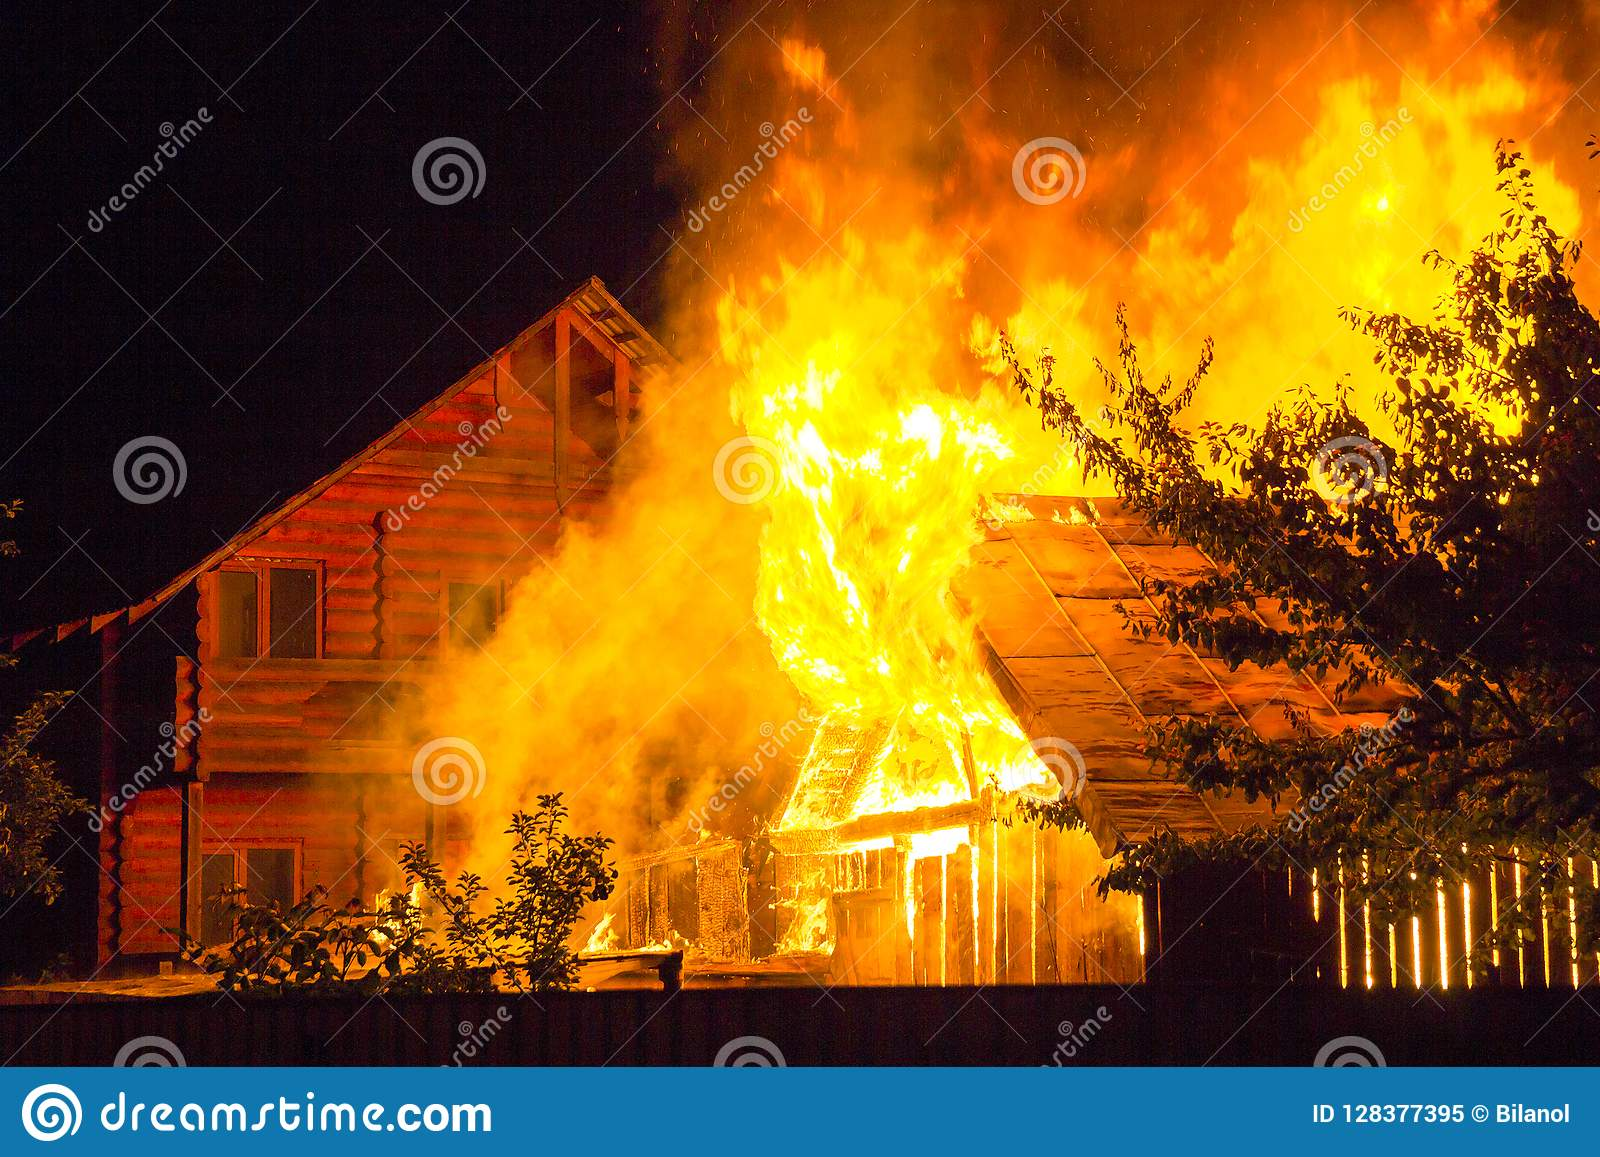 Burning wooden house at night. Bright orange flames and dense sm